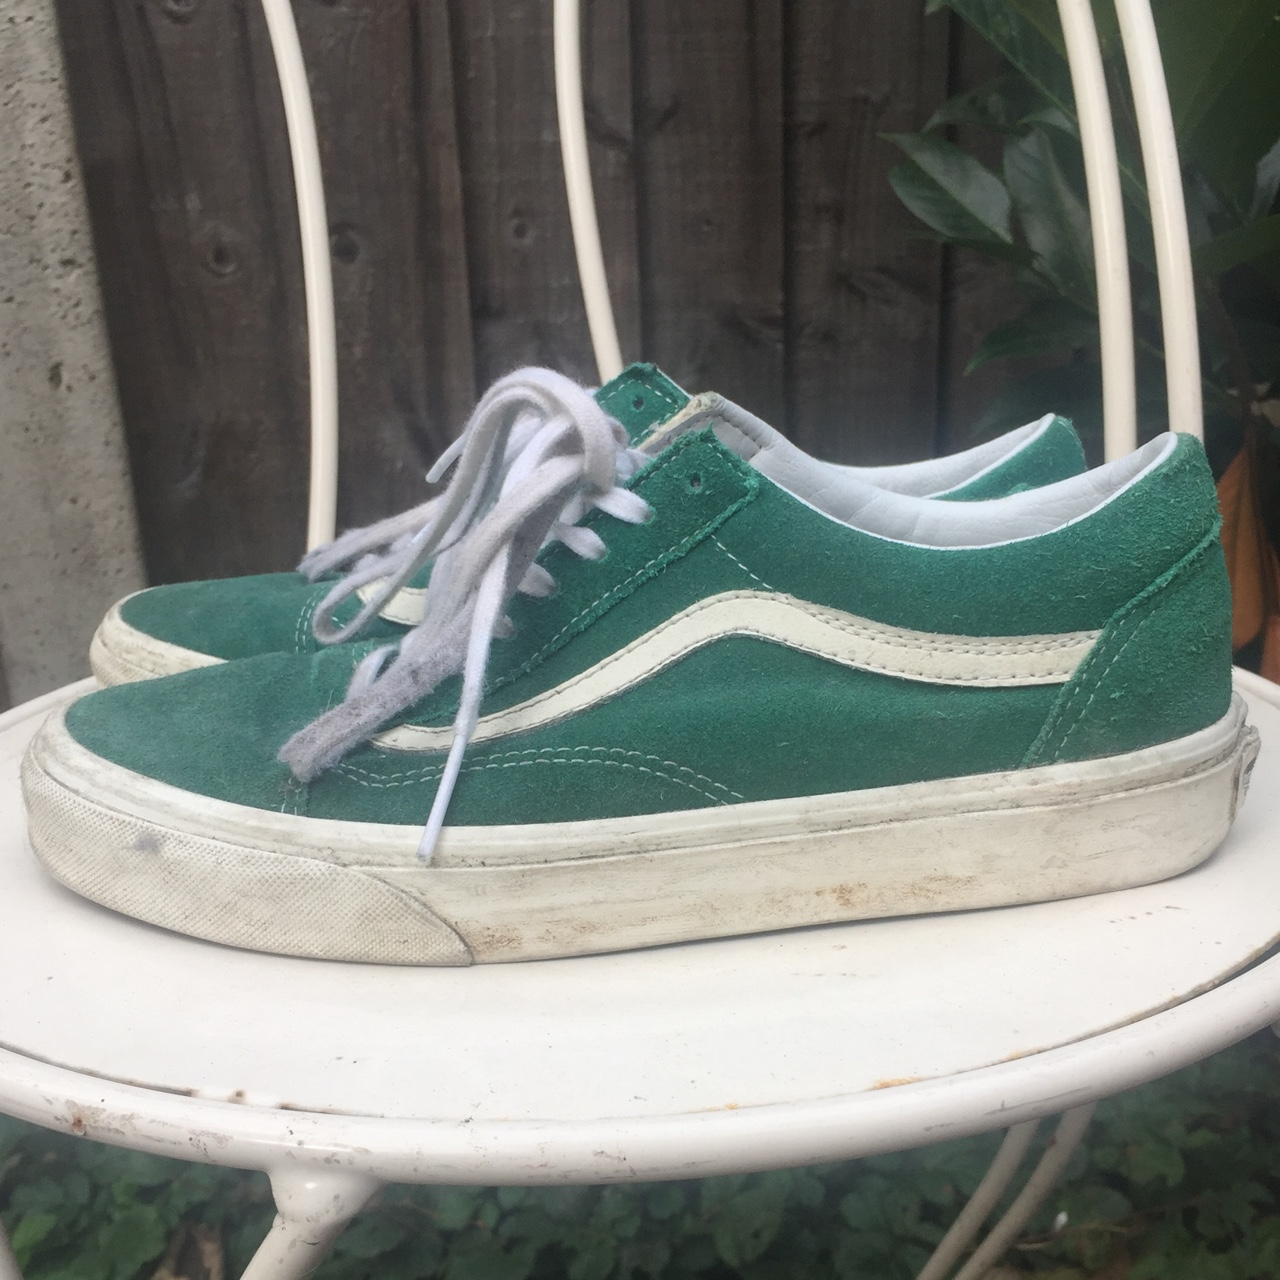 Vans Old Skool Vintage Evergreen size 6.5 obviously Depop